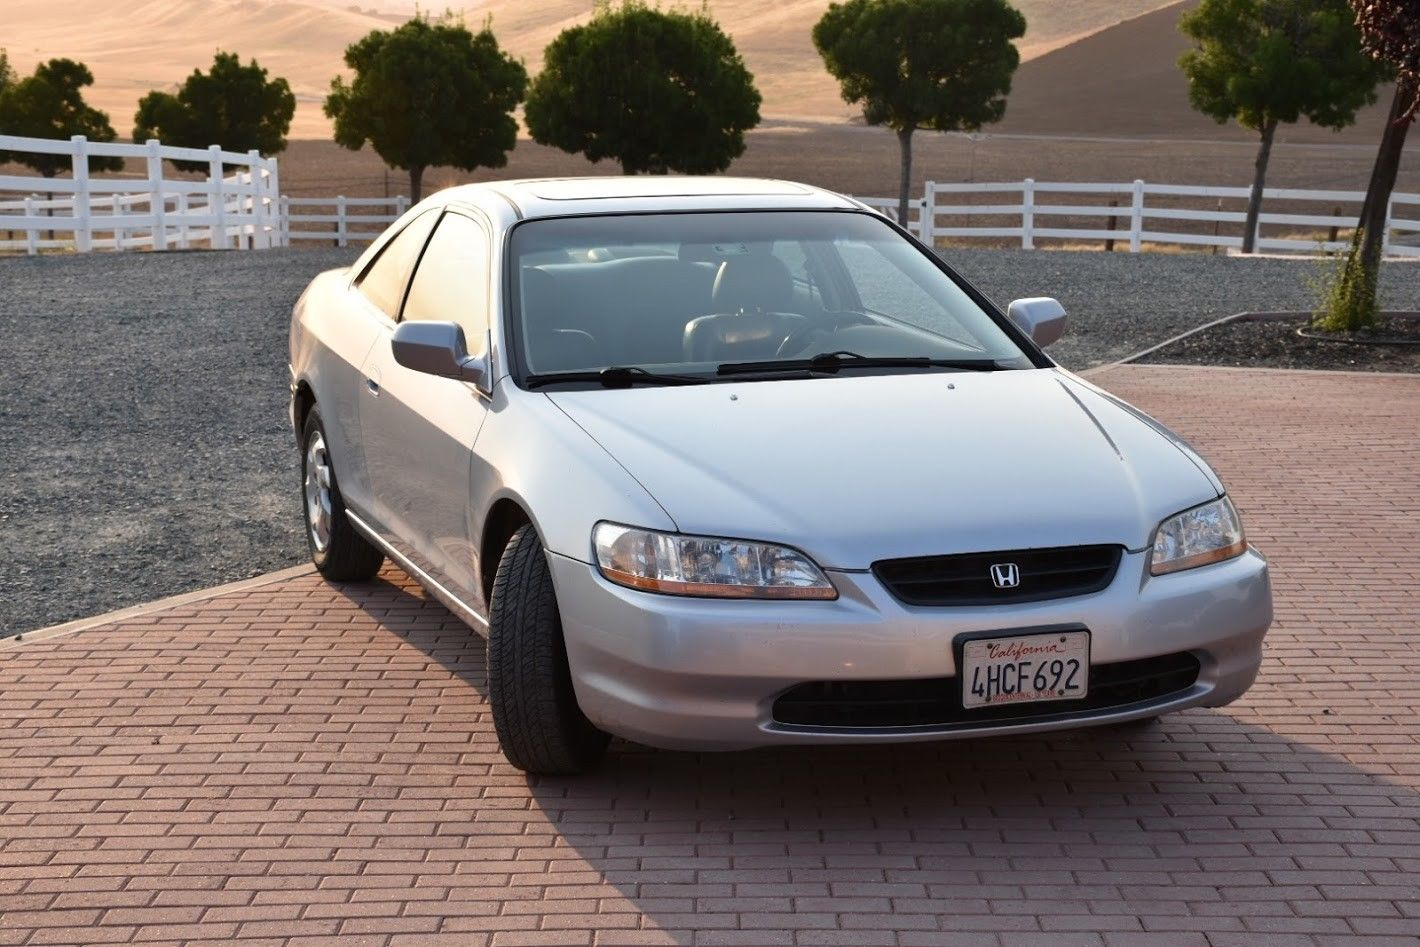 Awesome 1999 Honda Accord EX Coupe Clean 1 Owner Accord Coupe U2013 Rare 5spd  Manual 4cyl EX With Leather, Moonroof 2018